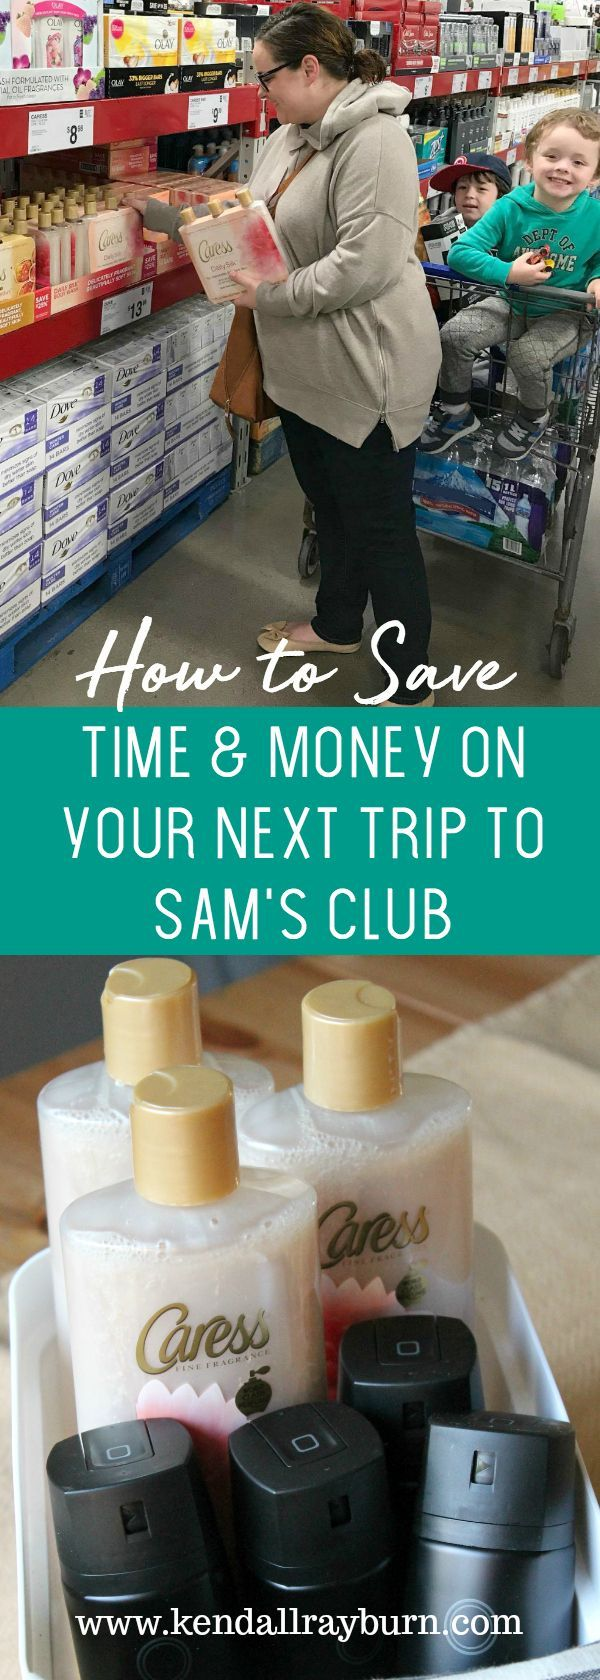 #ad  How to Save Time & Money on Your Next Trip to Sam's Club. #BetterTogetherSC @AXE @Caressb